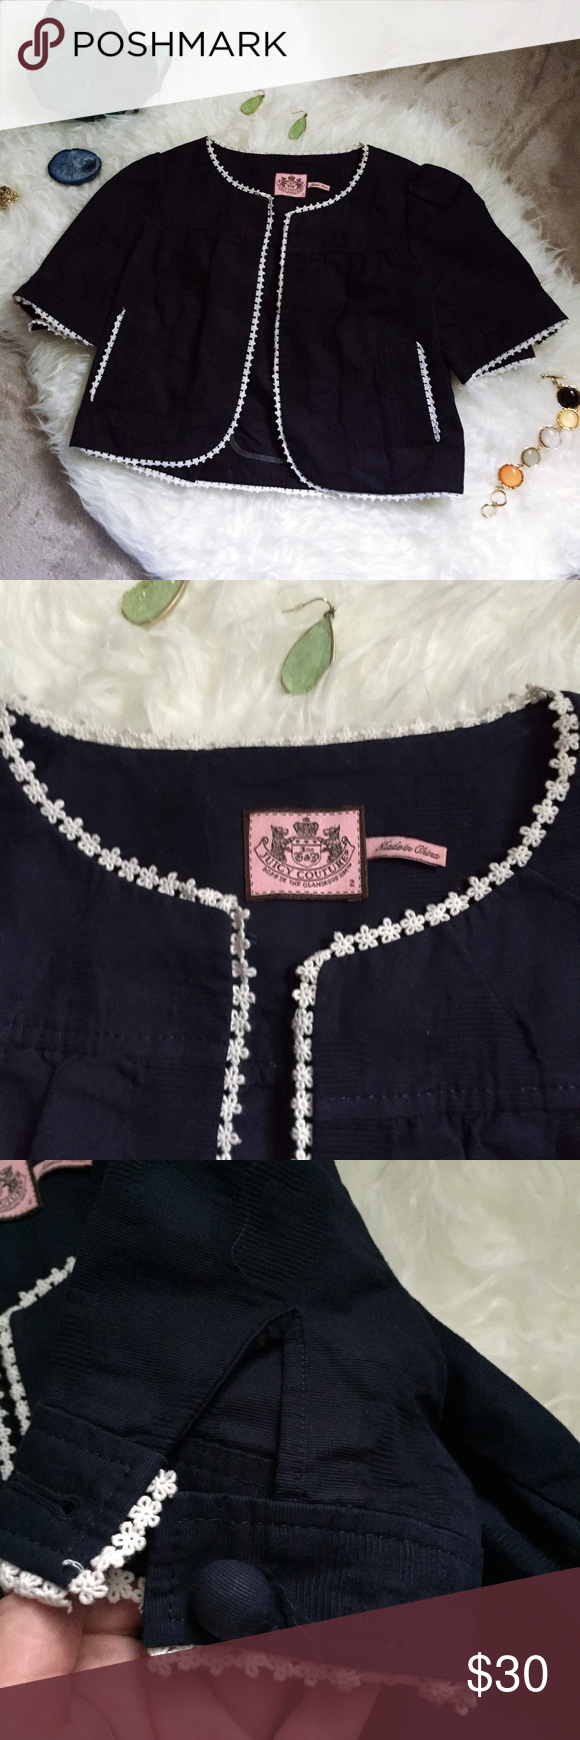 Juicy Couture floral trim shrug/jacket This is a lovely navy blue shrug with a flora trim by juicy couture. It is in excellent used condition. Has texturing throughout. Medium weight. Has buttons on the backs of the arms. Length is 16 inches, underarm to underarm is 17 inches. Juicy Couture Jackets & Coats